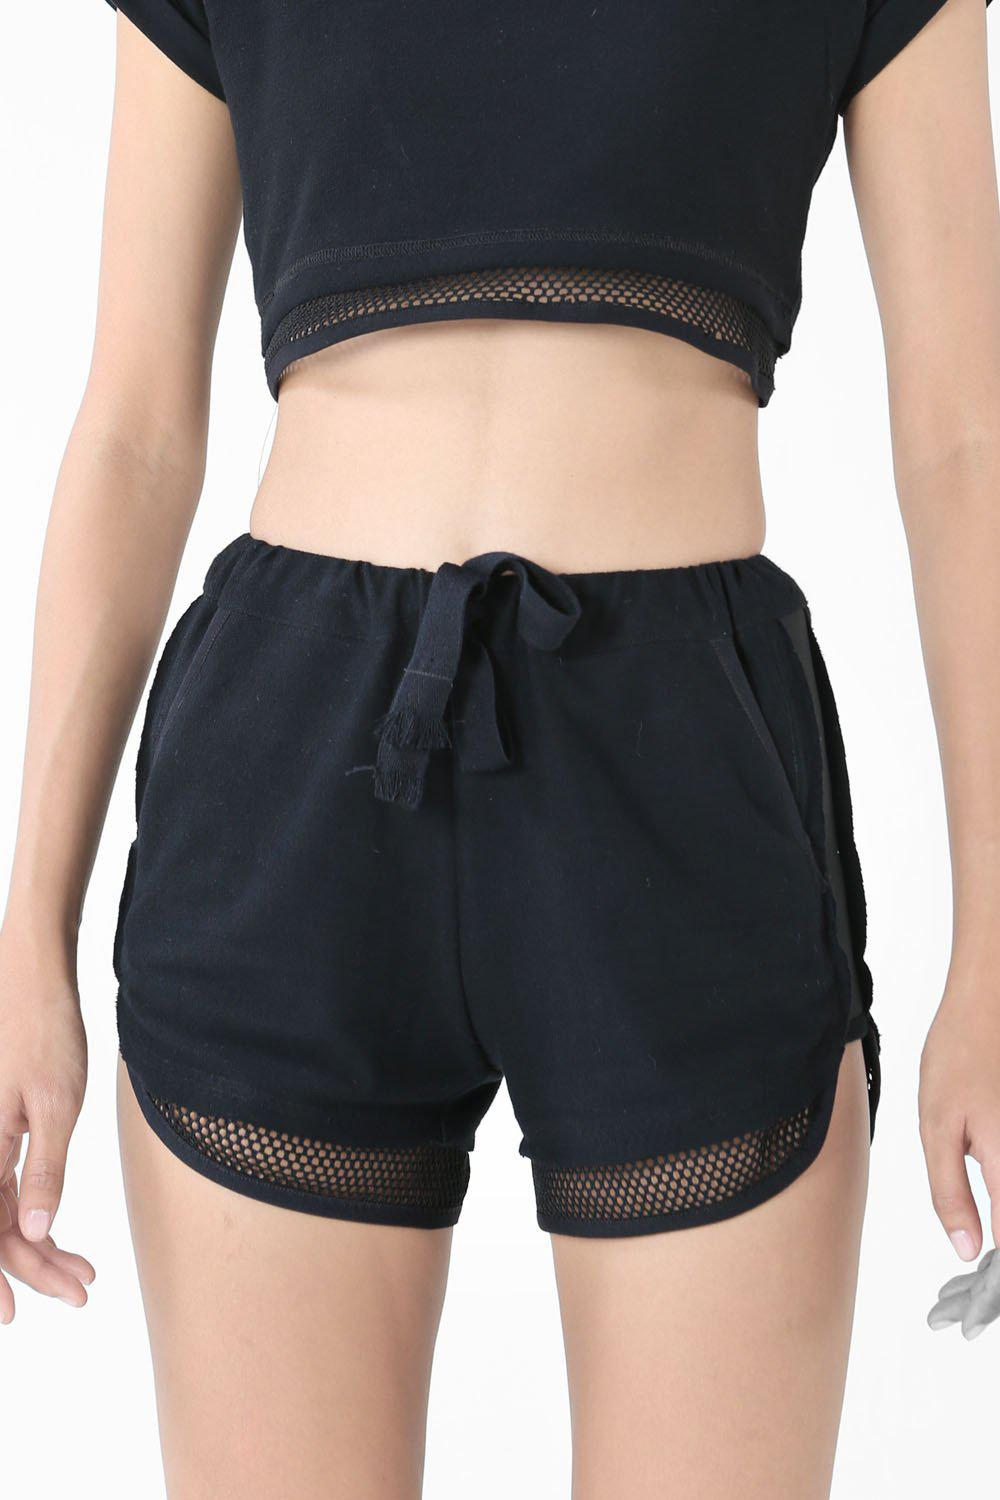 The Breaker Shorts